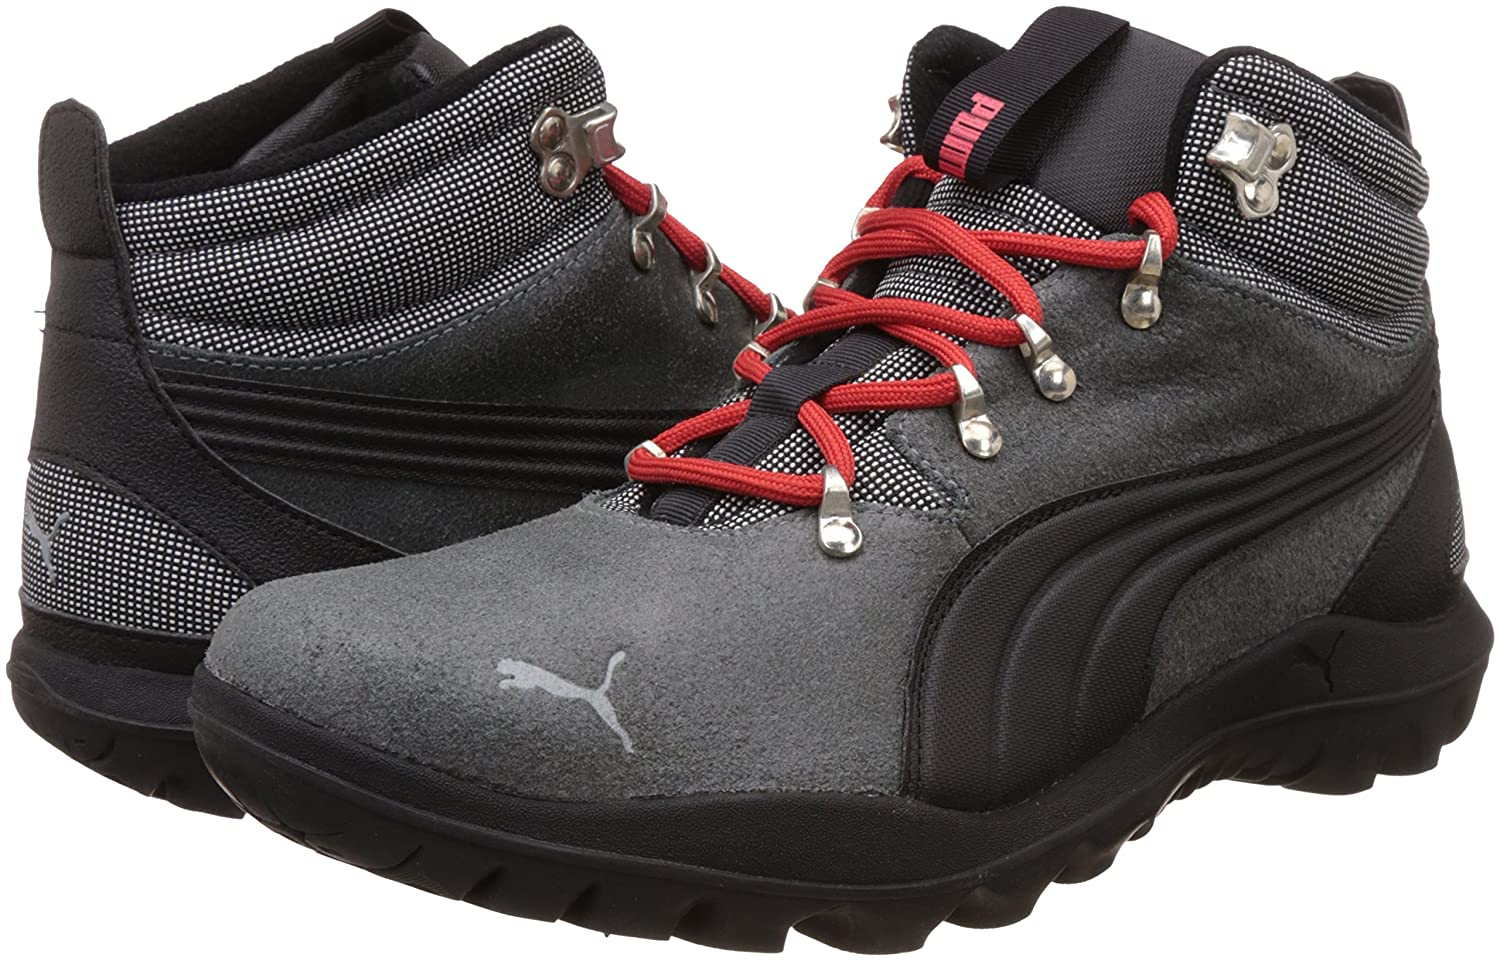 Upto 60% off On Sports Shoes By Amazon | Puma Men's Leather Trekking and Hiking Boots @ Rs.2,250